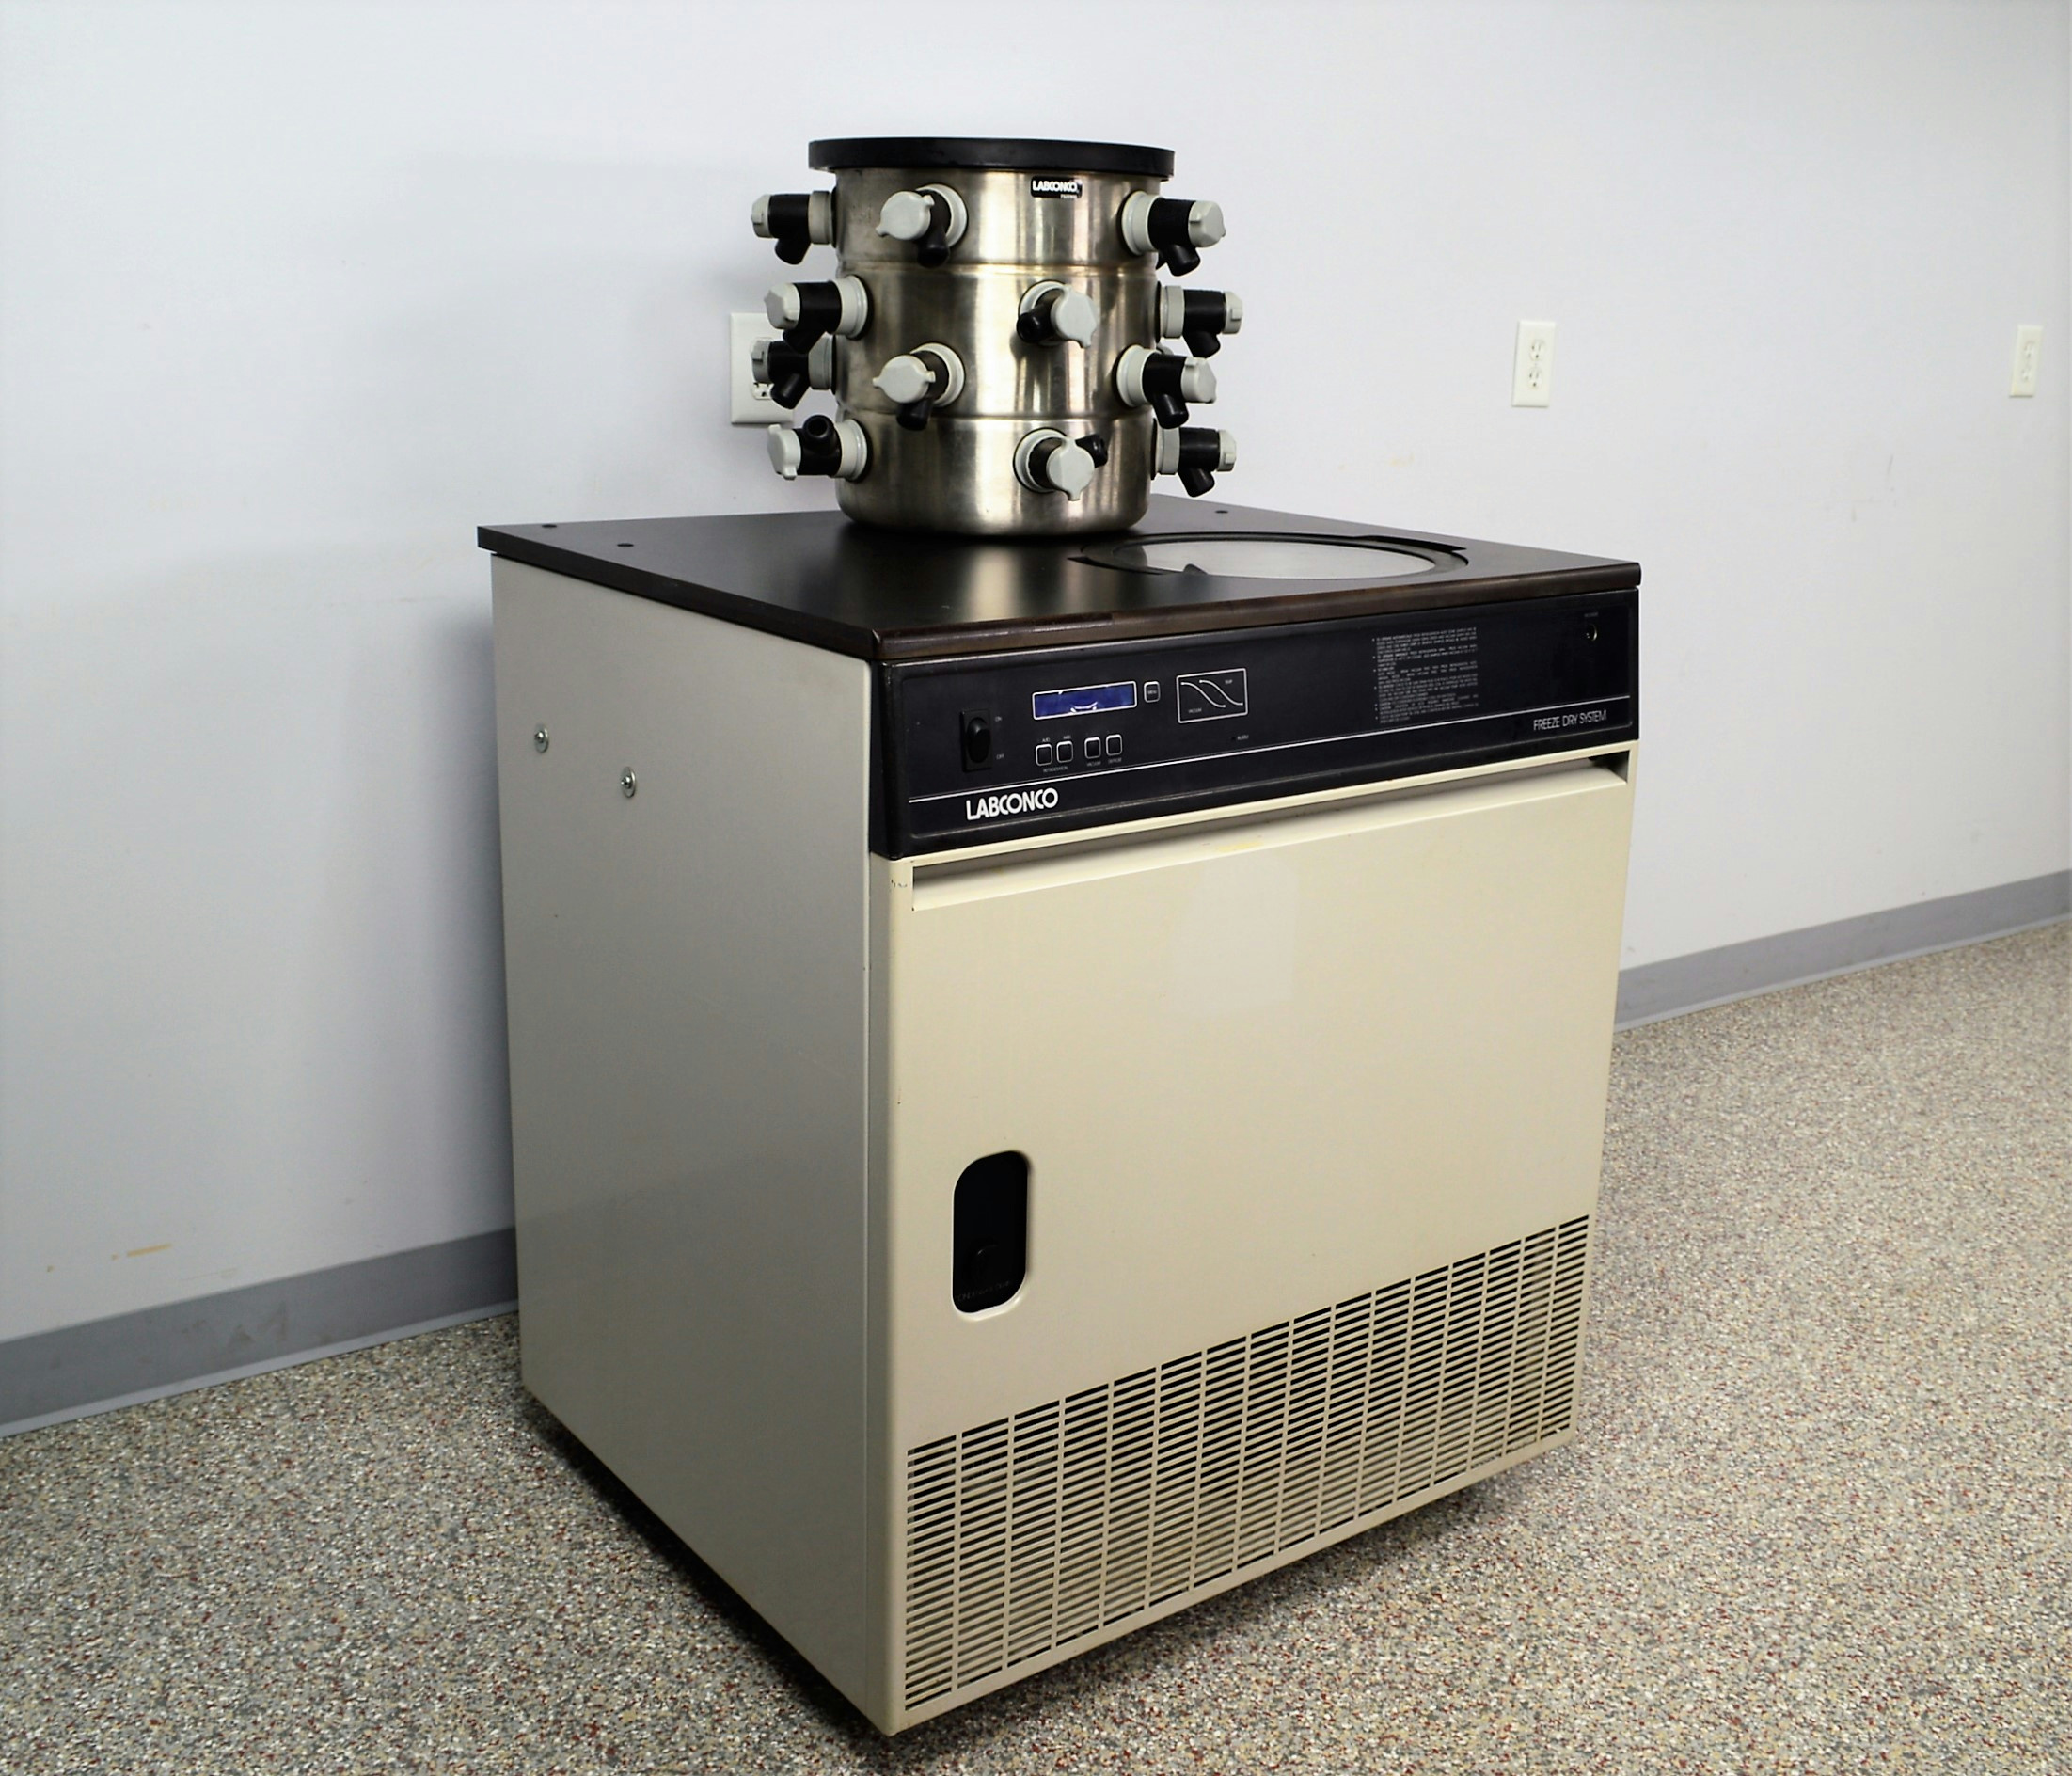 Image of Labconco-Mobile-Freeze-Dryer-Lyophilizer-Vacuum-77540 by New Life Scientific Inc.